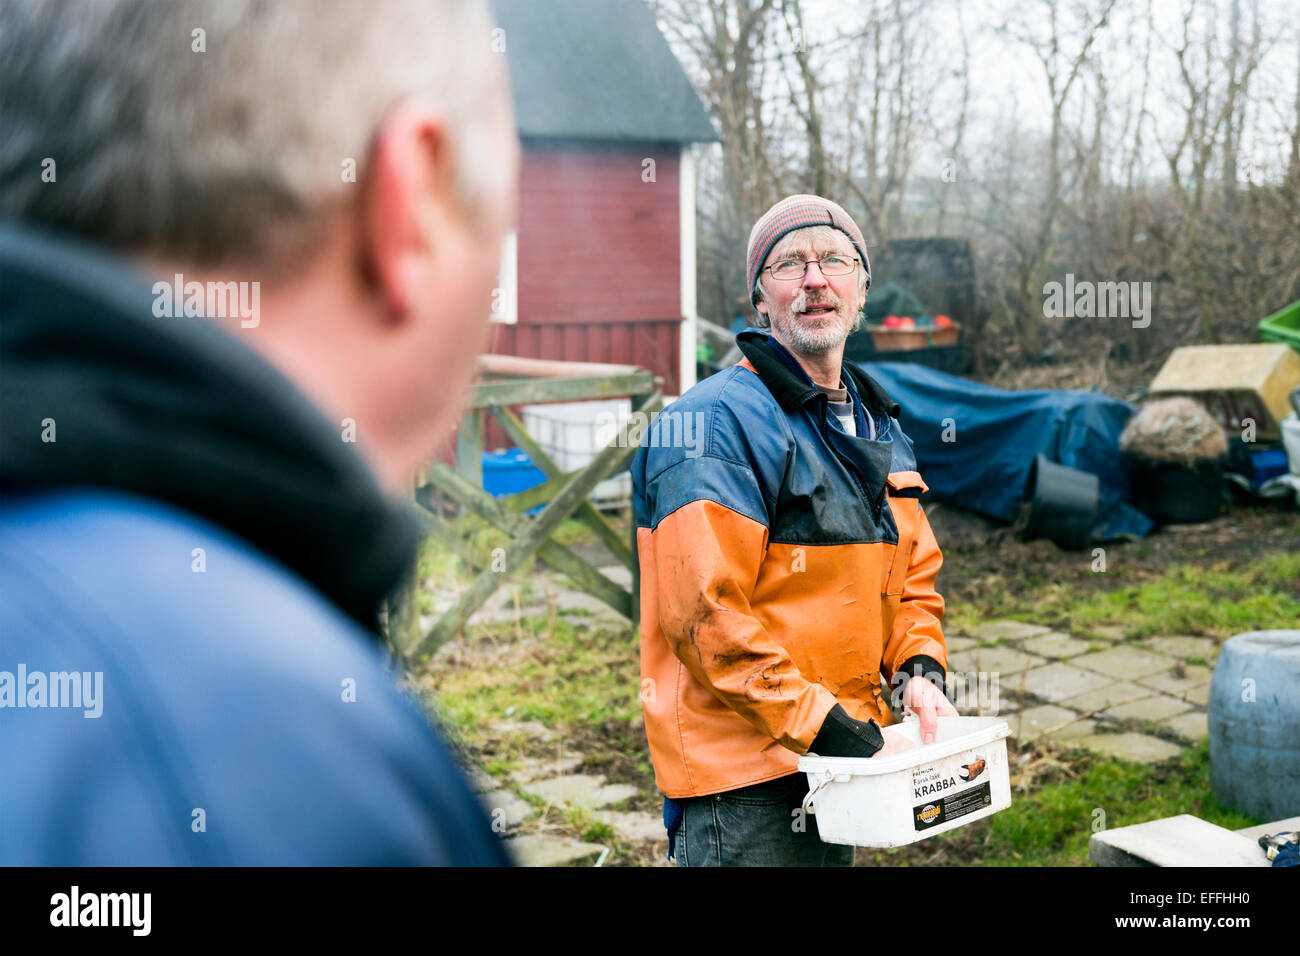 Mature fisherman holding container while talking with colleague outdoors Stock Photo